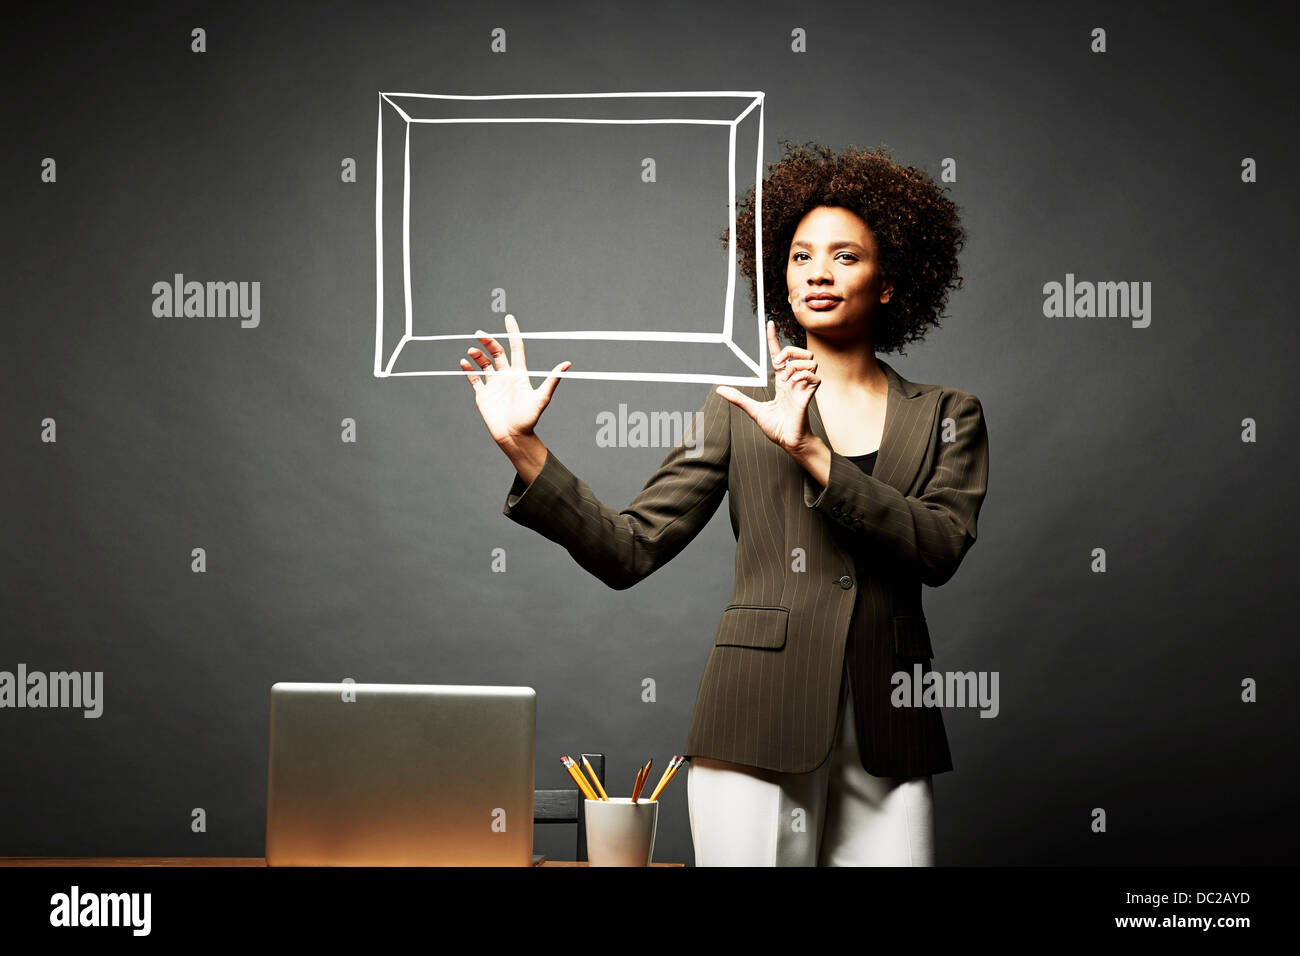 Woman holding up a picture frame - Stock Image